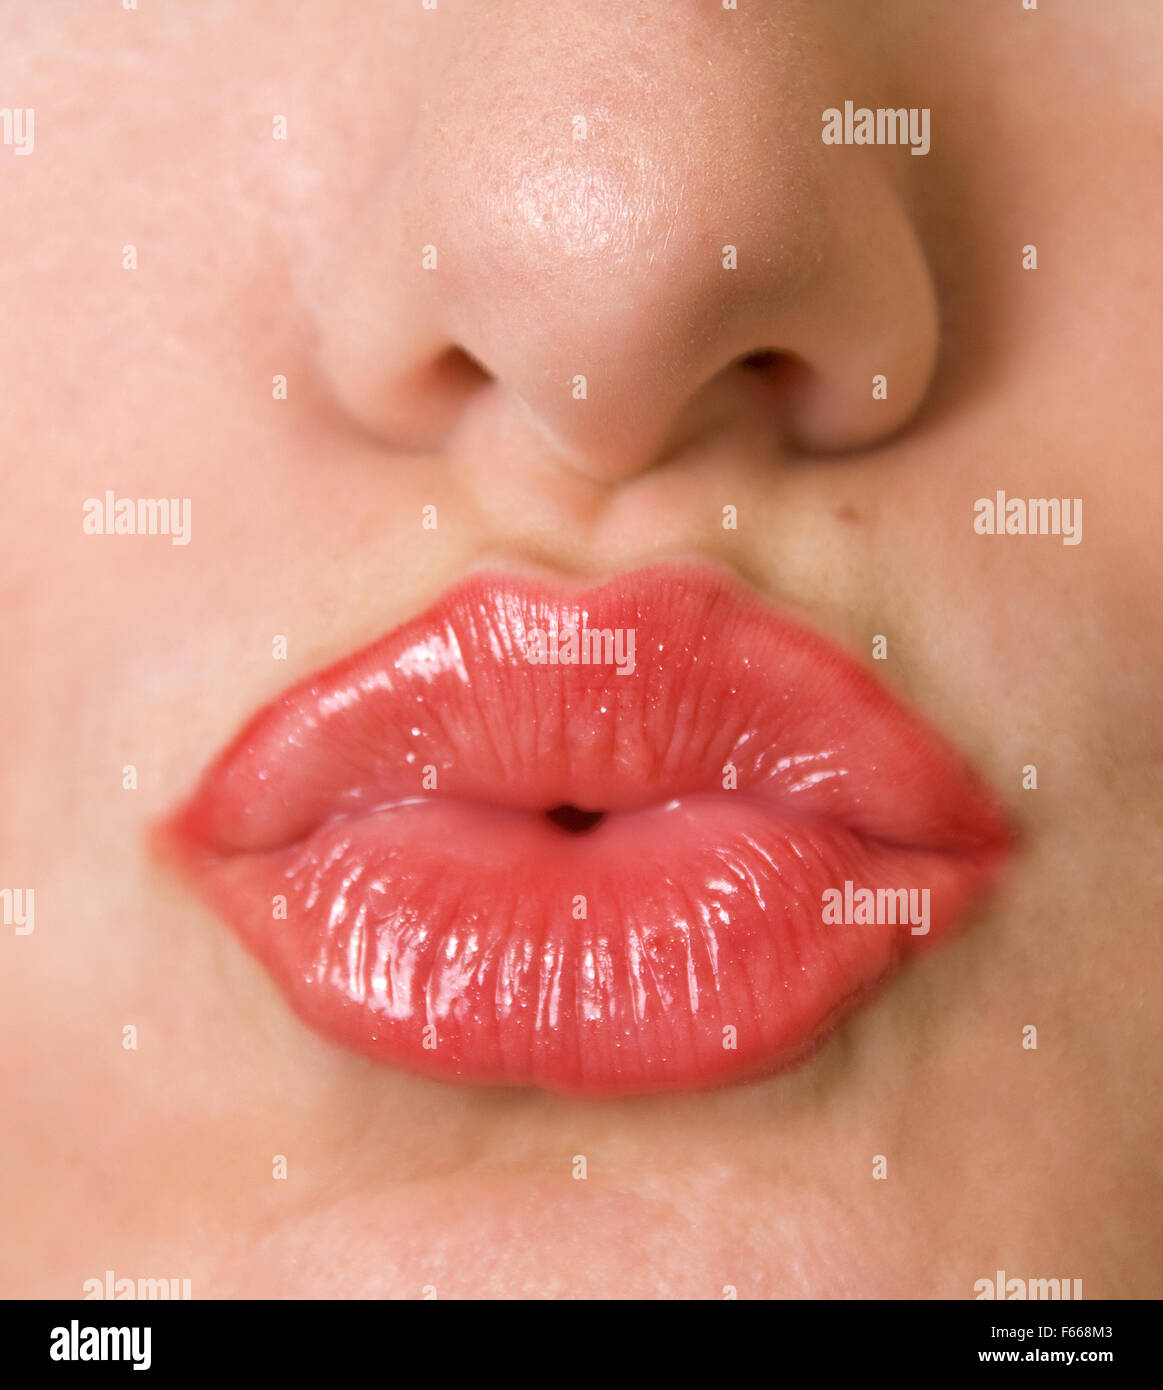 Kissing Lips Stock Photo Alamy